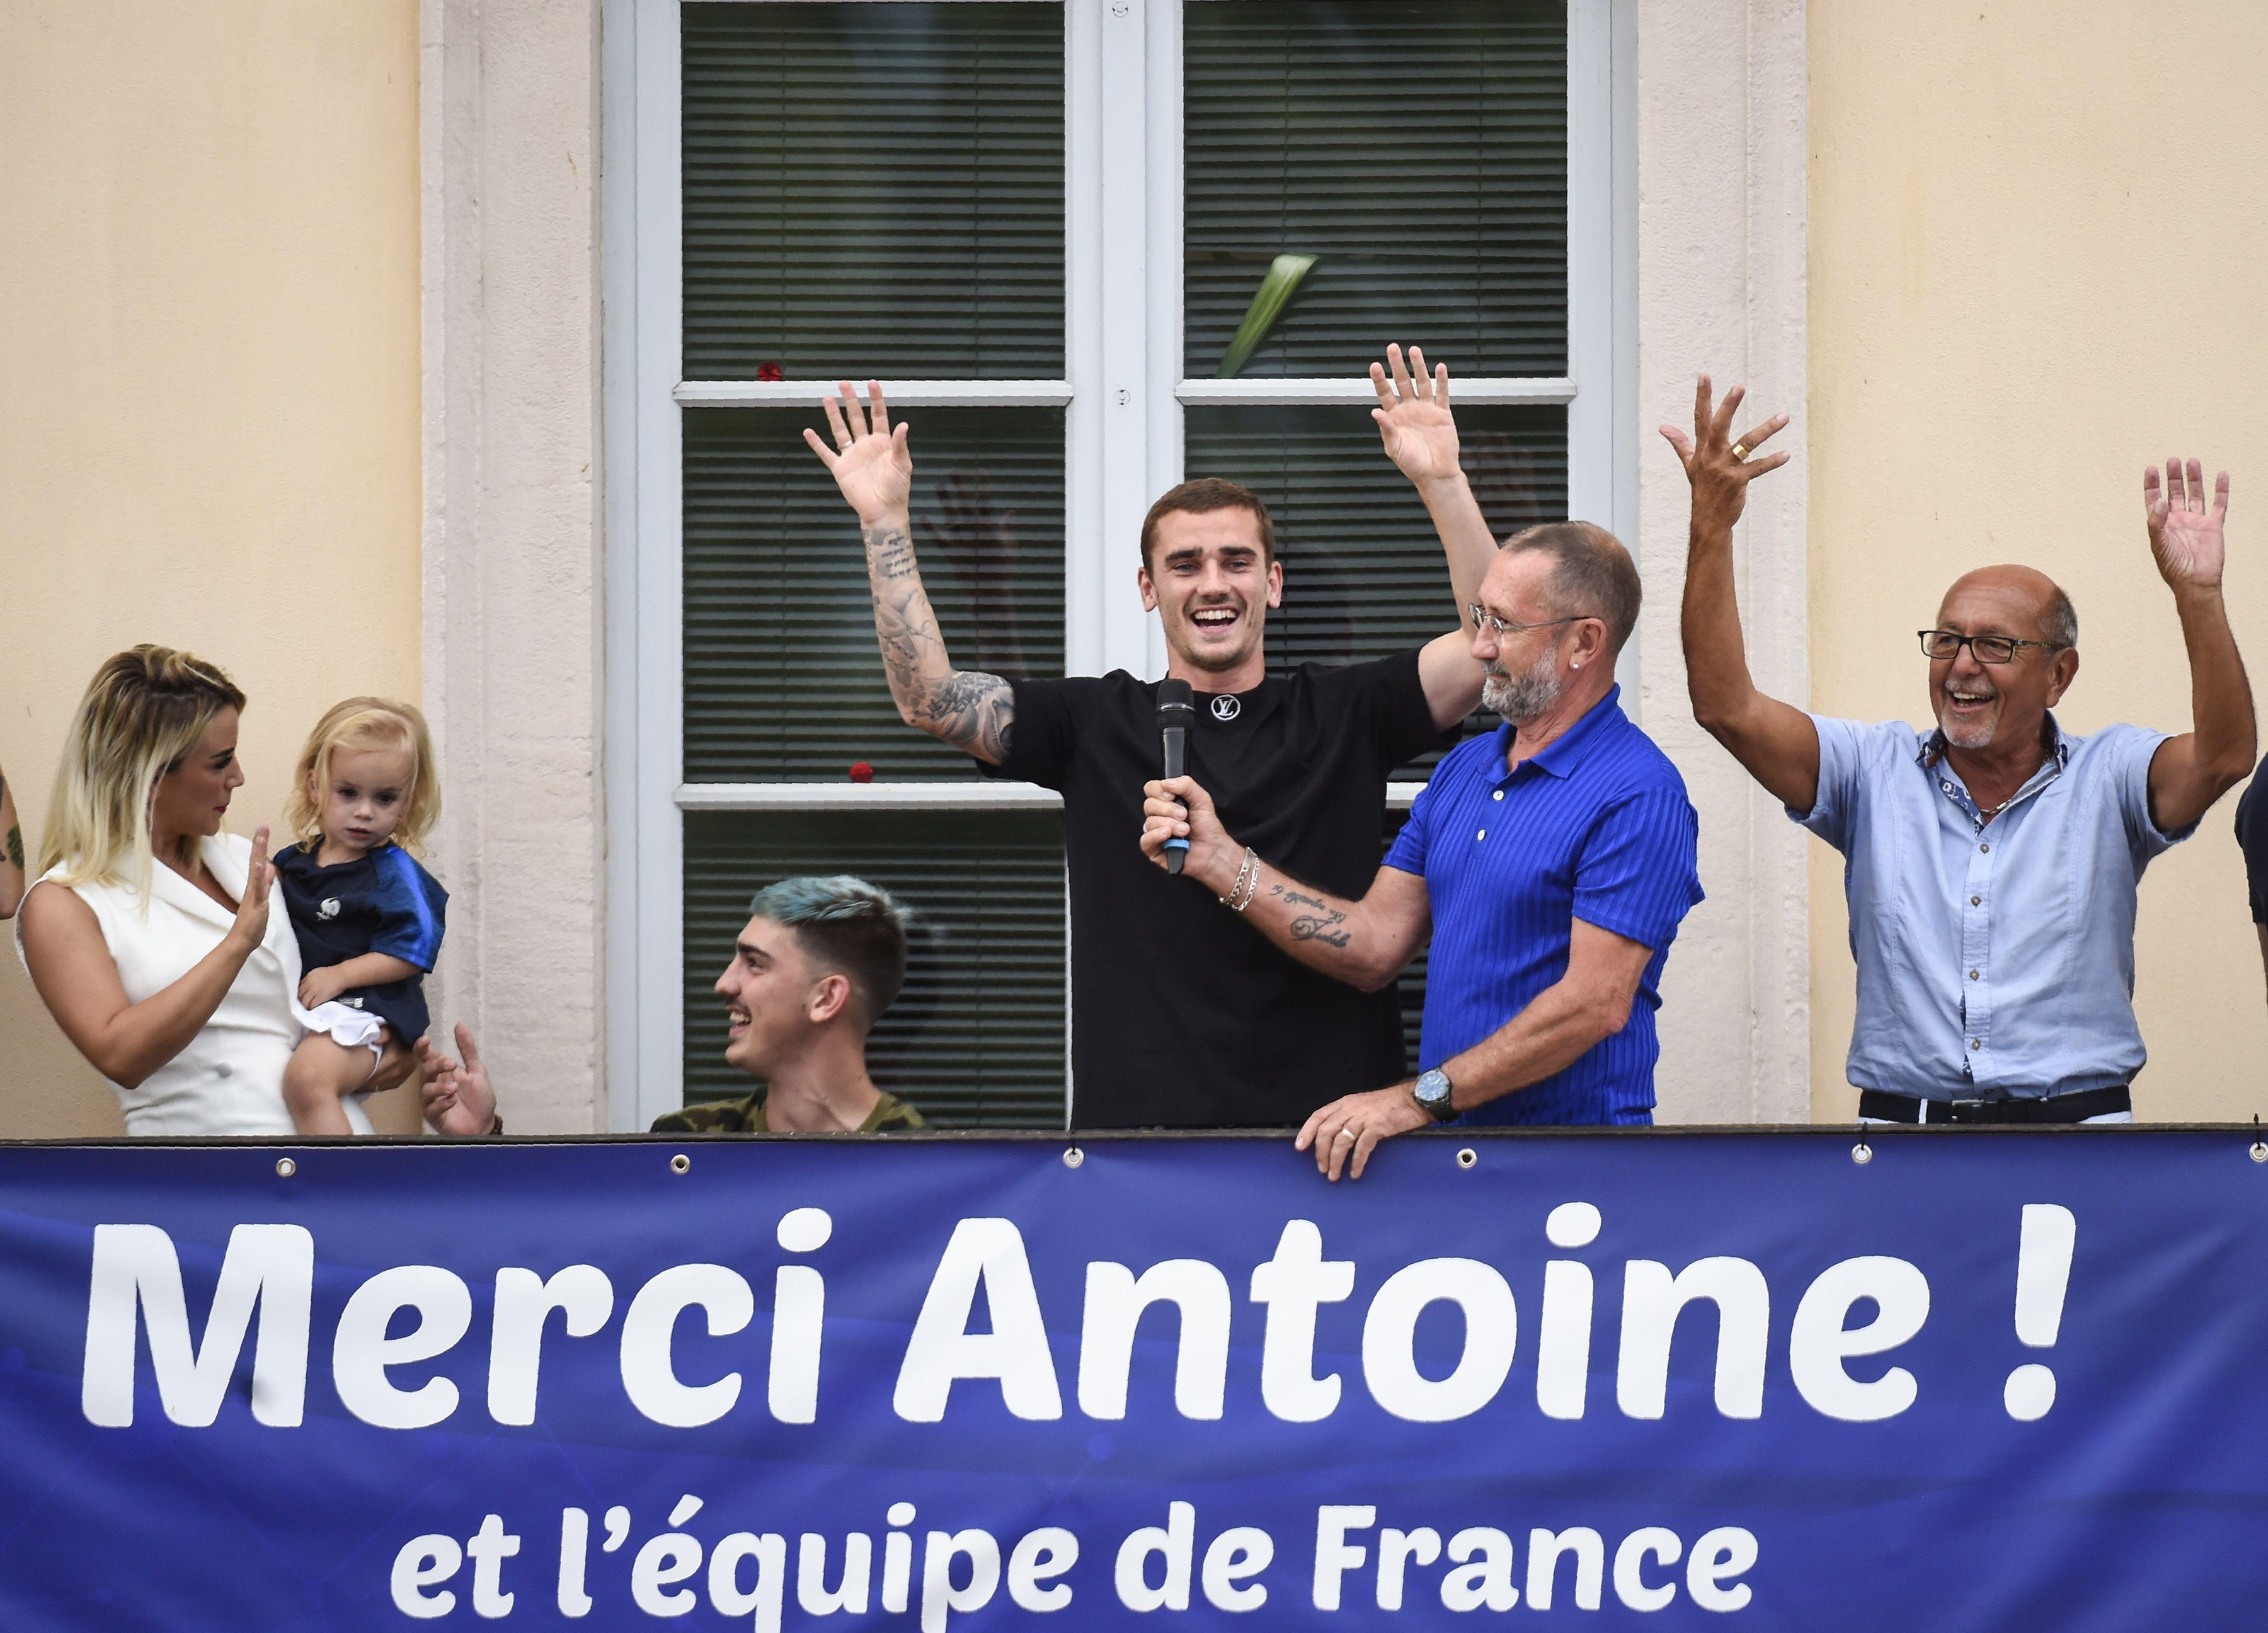 A banner thanked Griezmann and the rest of the French team